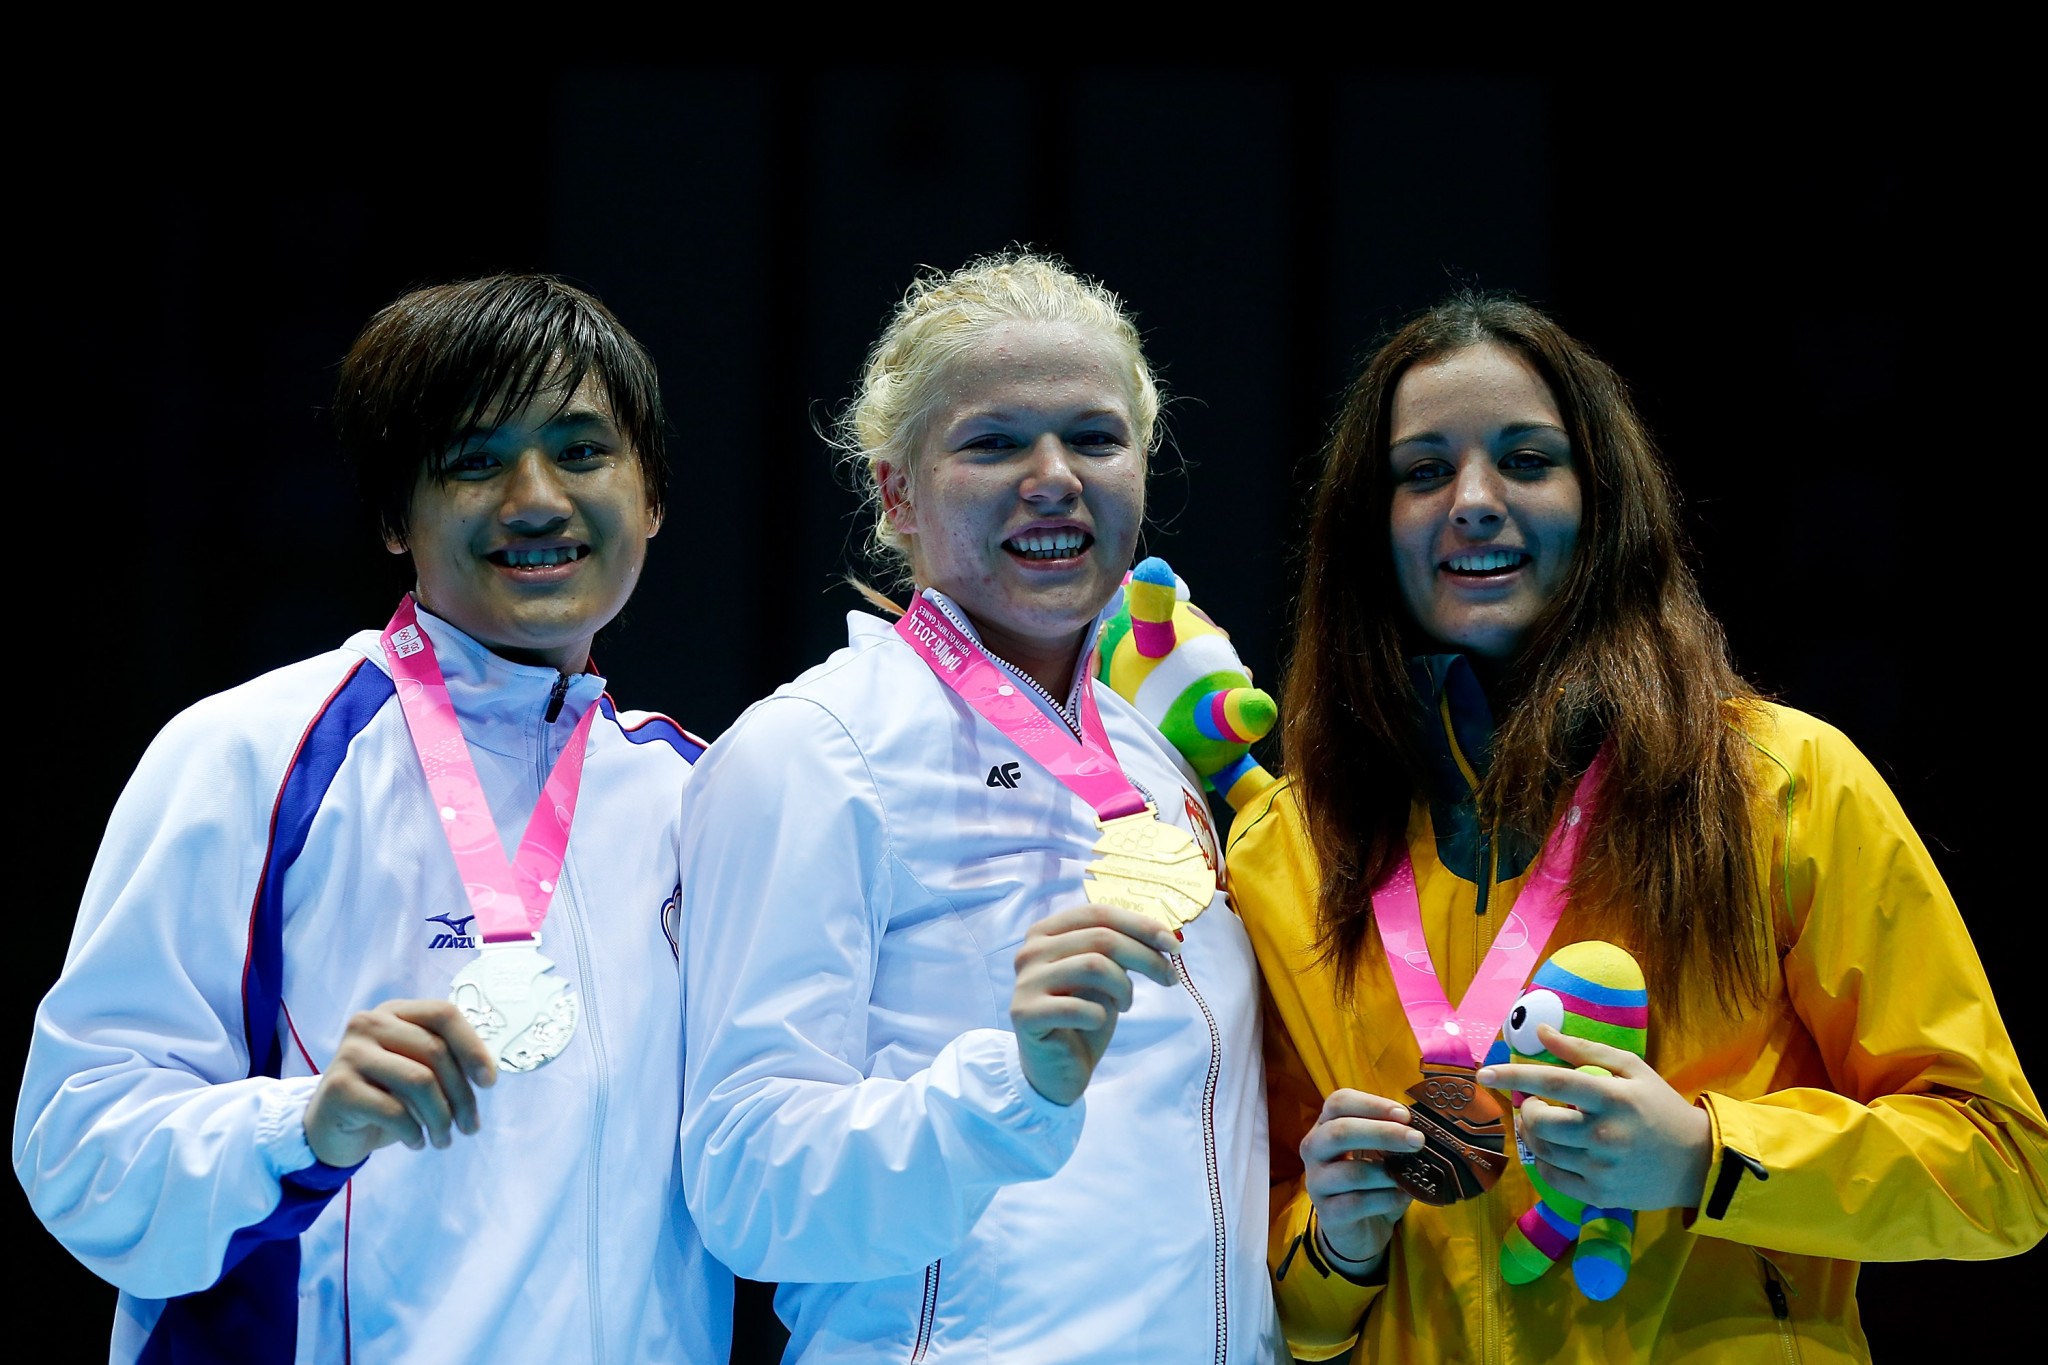 Elzbieta Wojcik won a gold medal at the Nanjing 2014 Youth Olympics during her junior career ©Getty Images